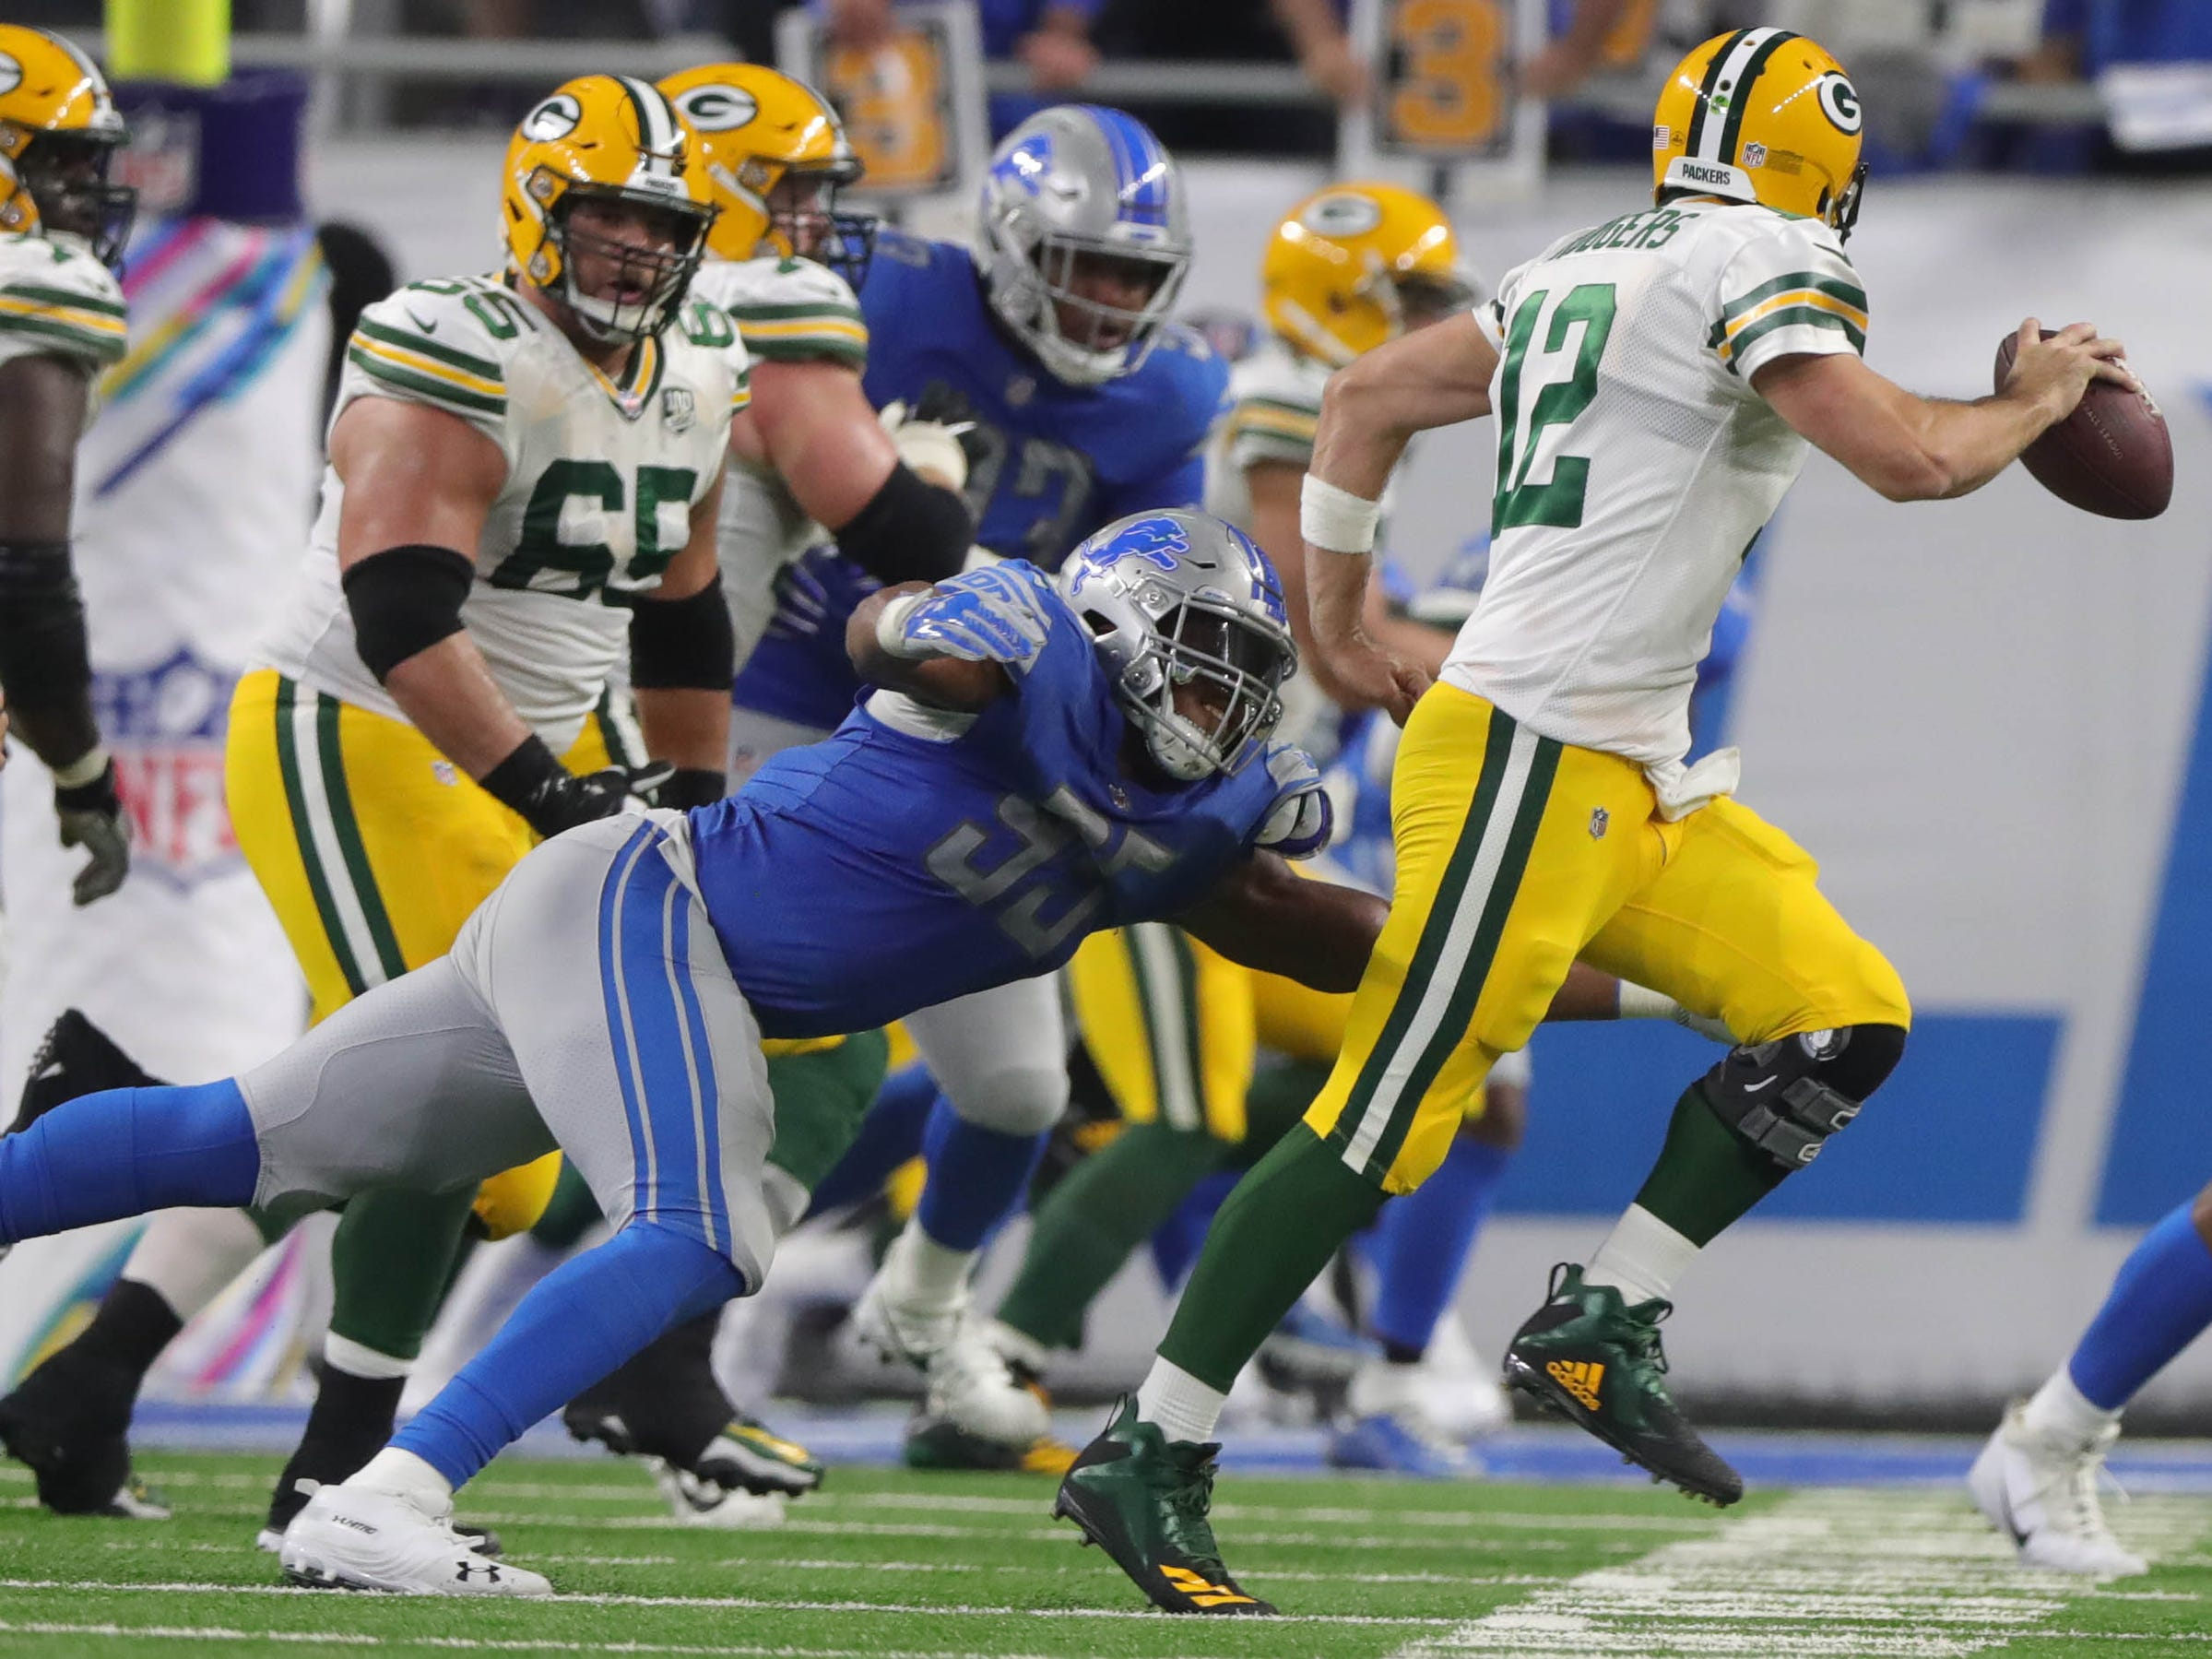 Lions linebacker Eric Lee puts pressure on Packers quarterback Aaron Rogers during the first half of the Lions'  31-23 win on Sunday, Oct. 7, 2018, at Ford Field.